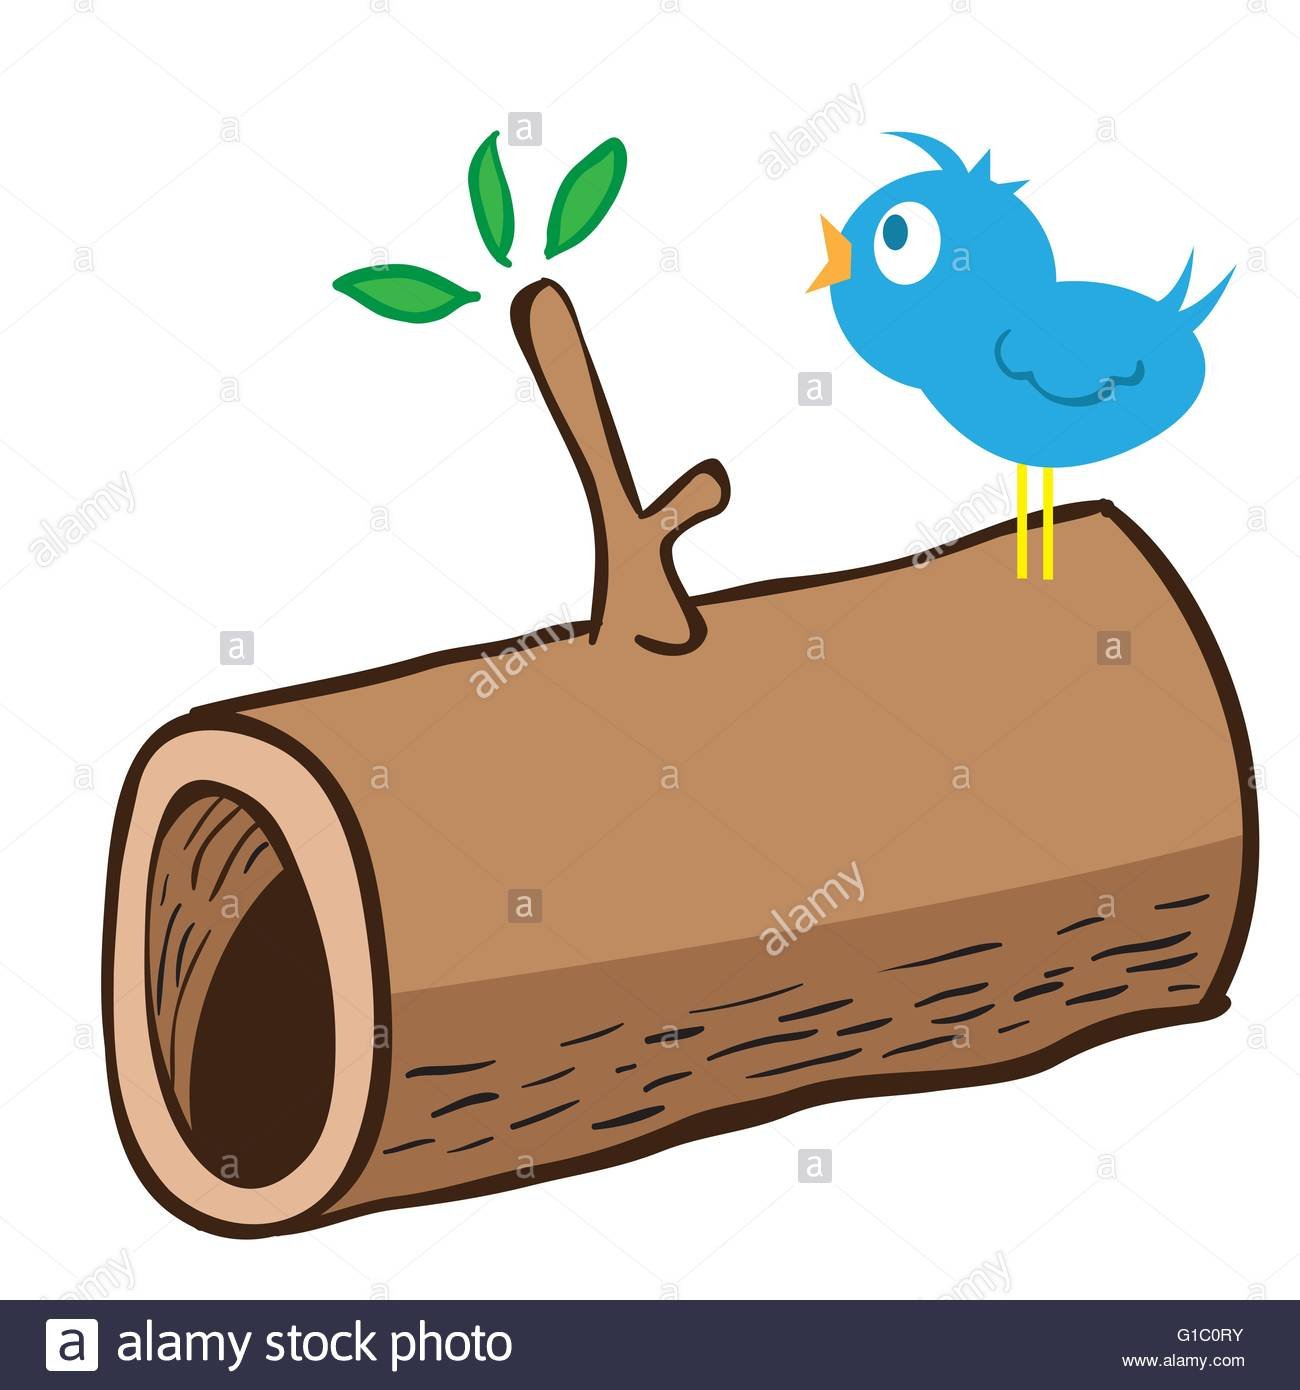 1300x1390 Cartoon Illustration Of Wood Log And A Bird Singing On It Stock